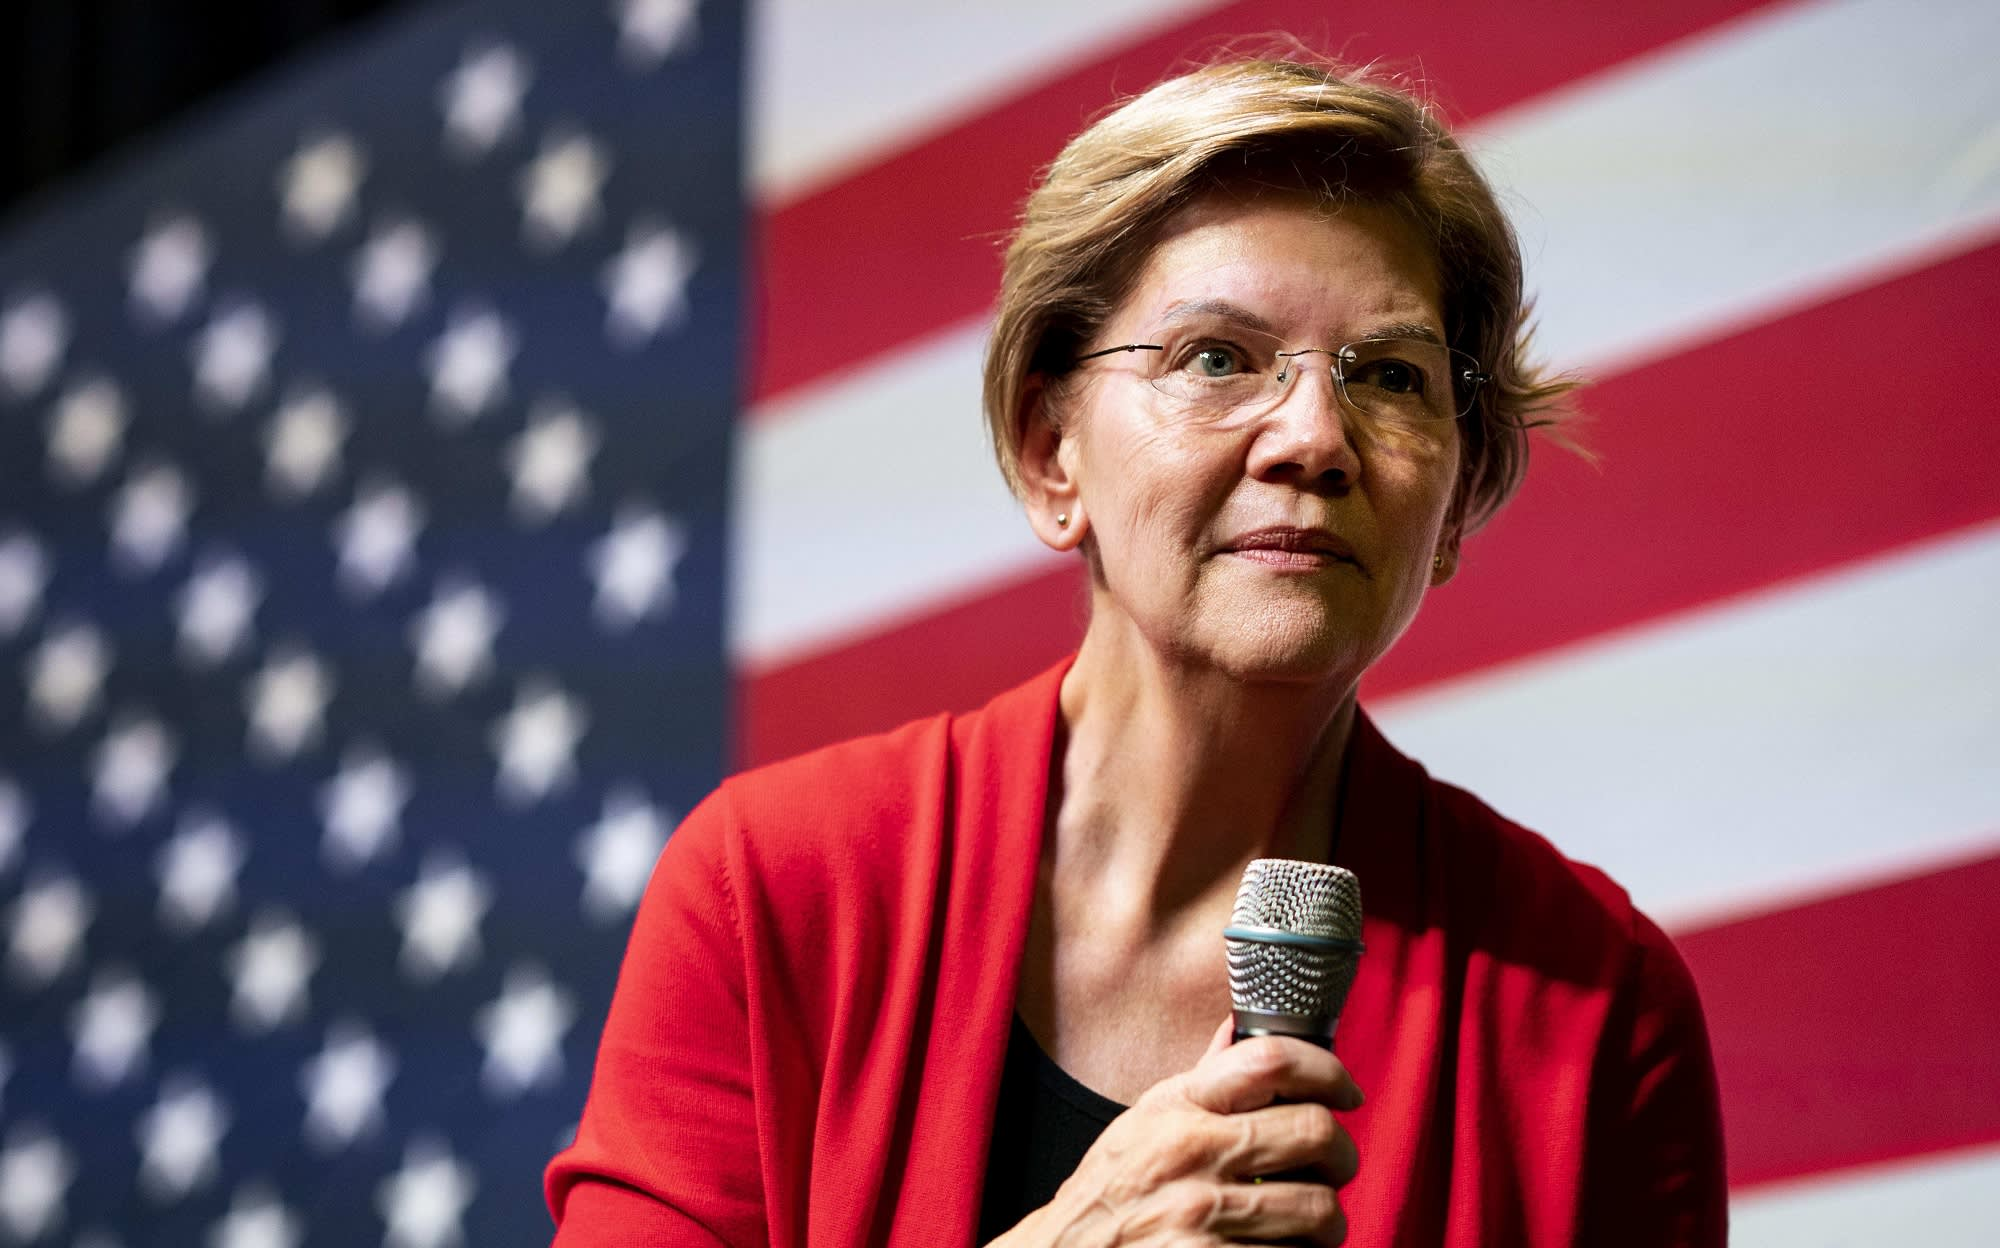 Elizabeth Warren releases new plan for military service members and veterans, emphasizing education